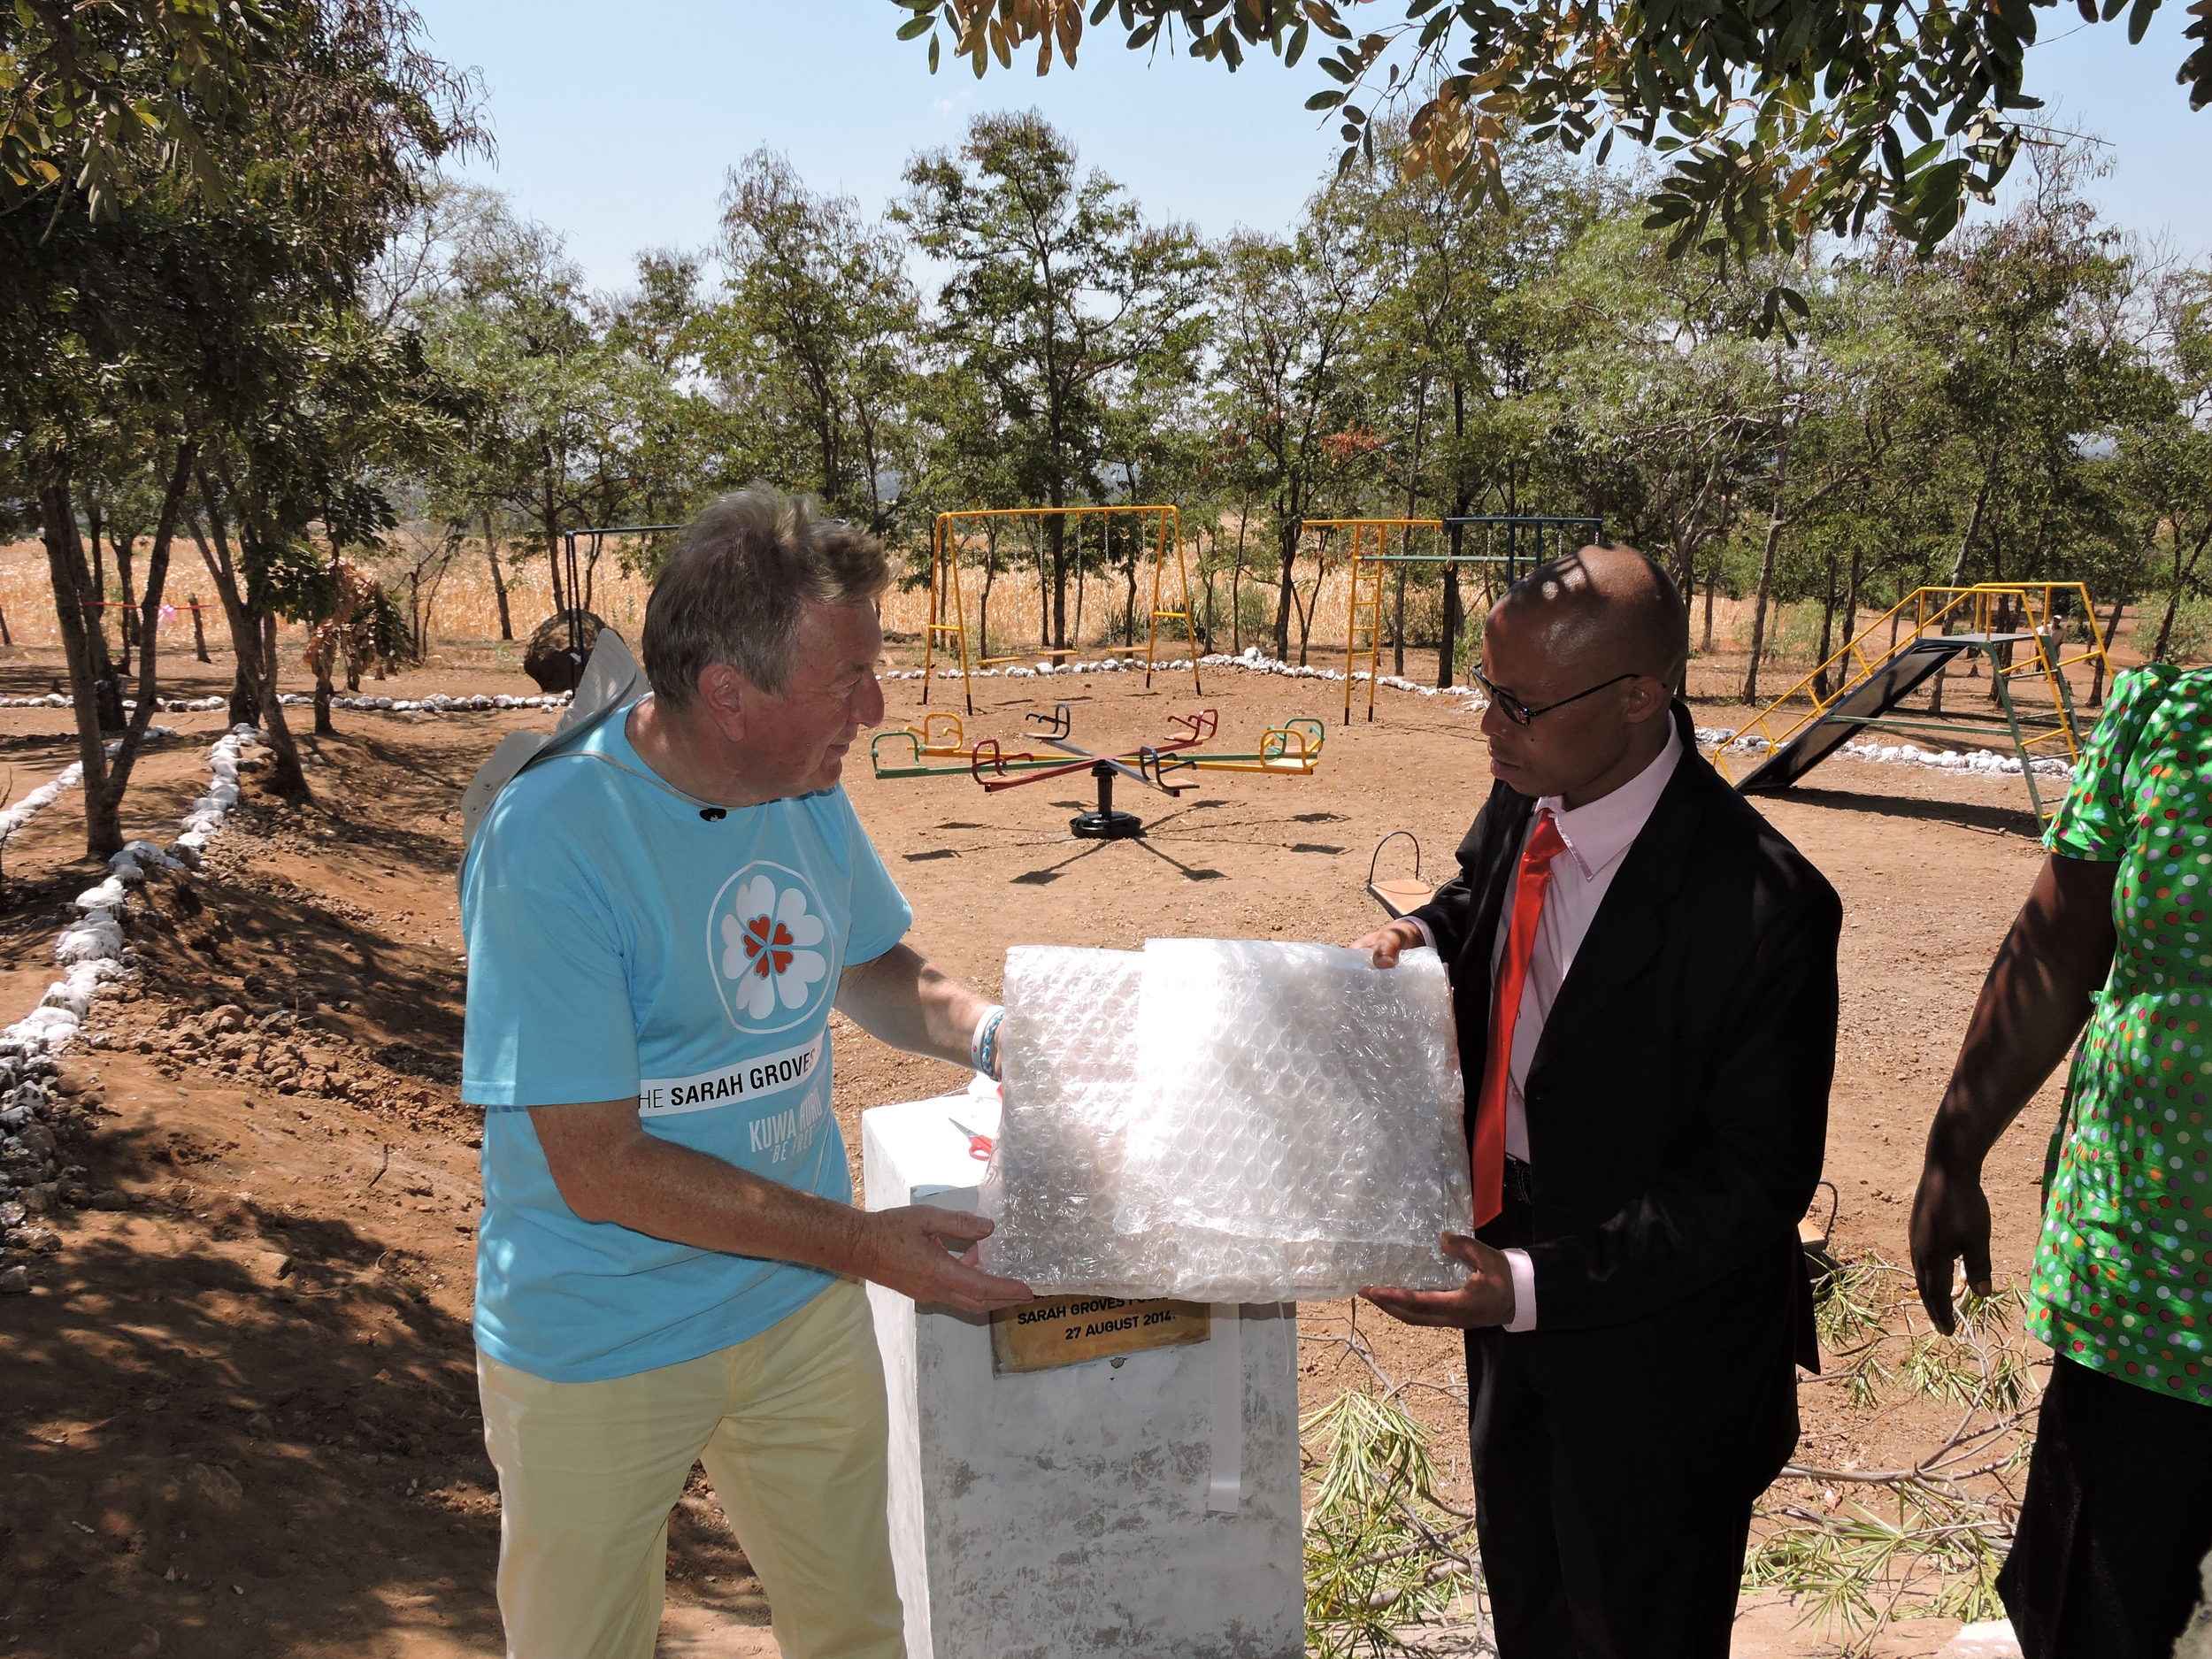 """Presentation and unveiling of plaque which reads """"In loving memory of Sarah Groves, who visited Mgungani School in 2012. Sarah Groves Foundation 27 August 2014"""""""